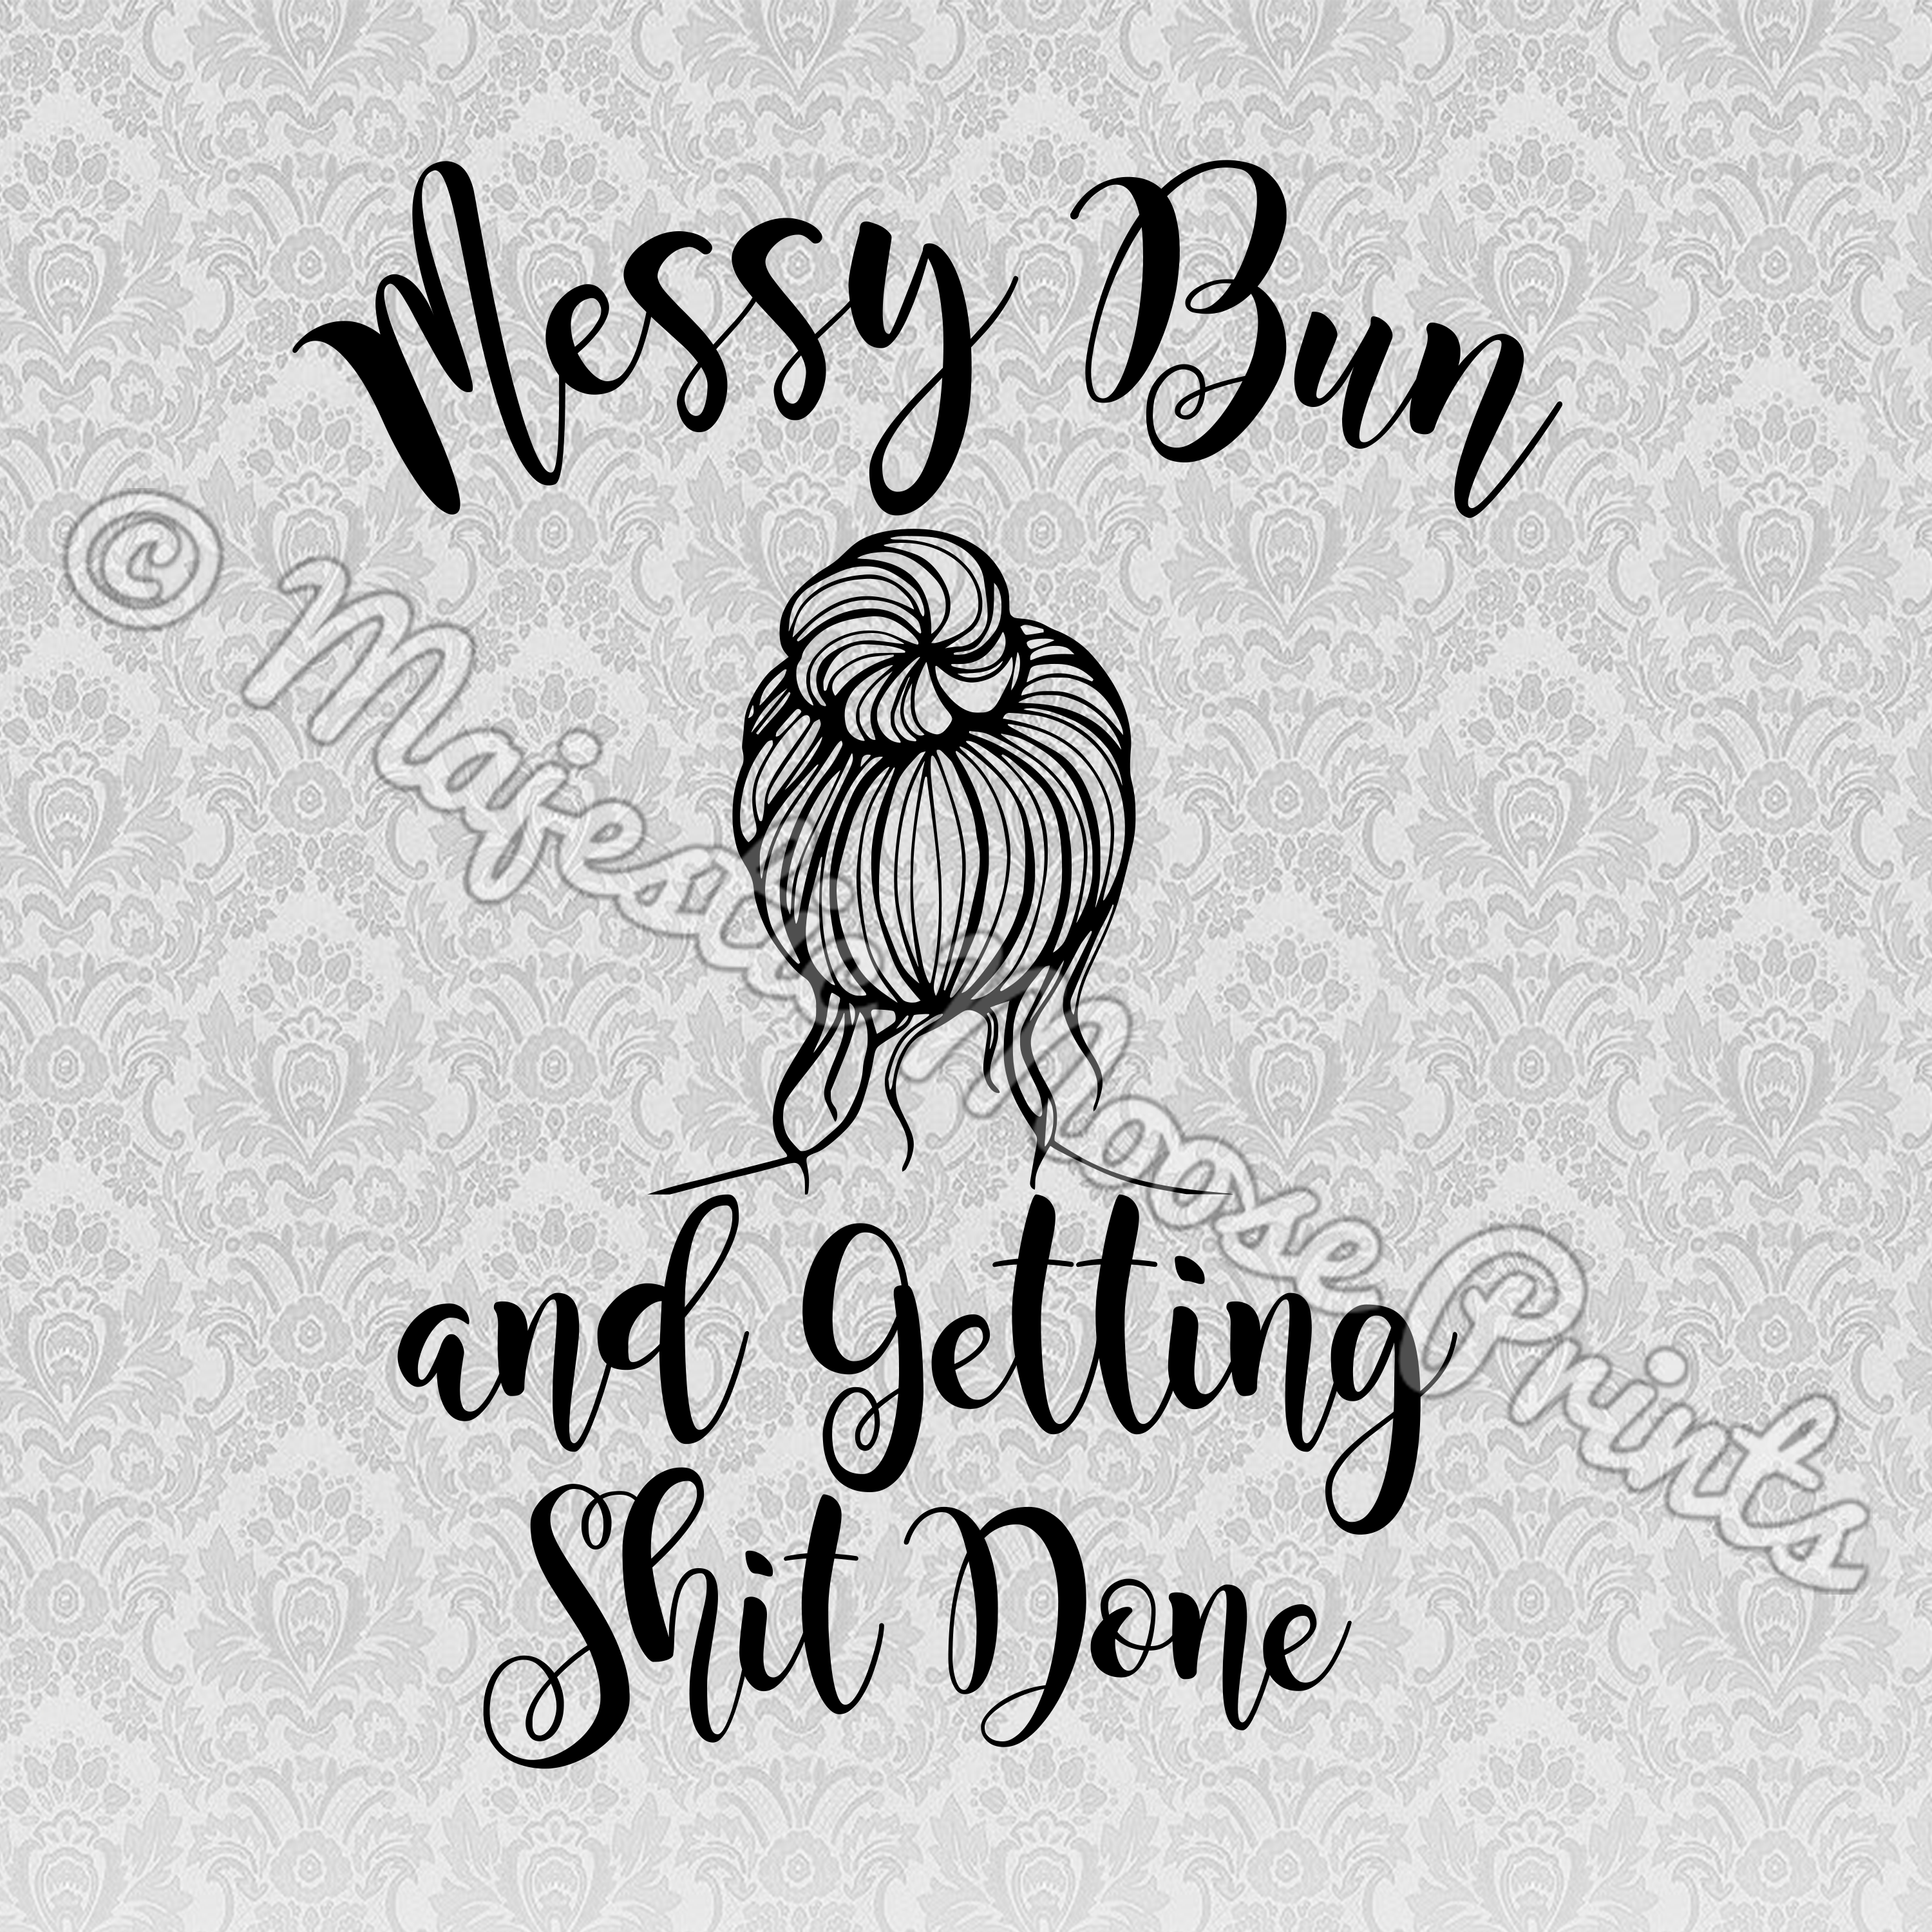 majestic moose prints messy bun and getting shit done svg Hair in Mirror Clip Art Hair in Mirror Clip Art